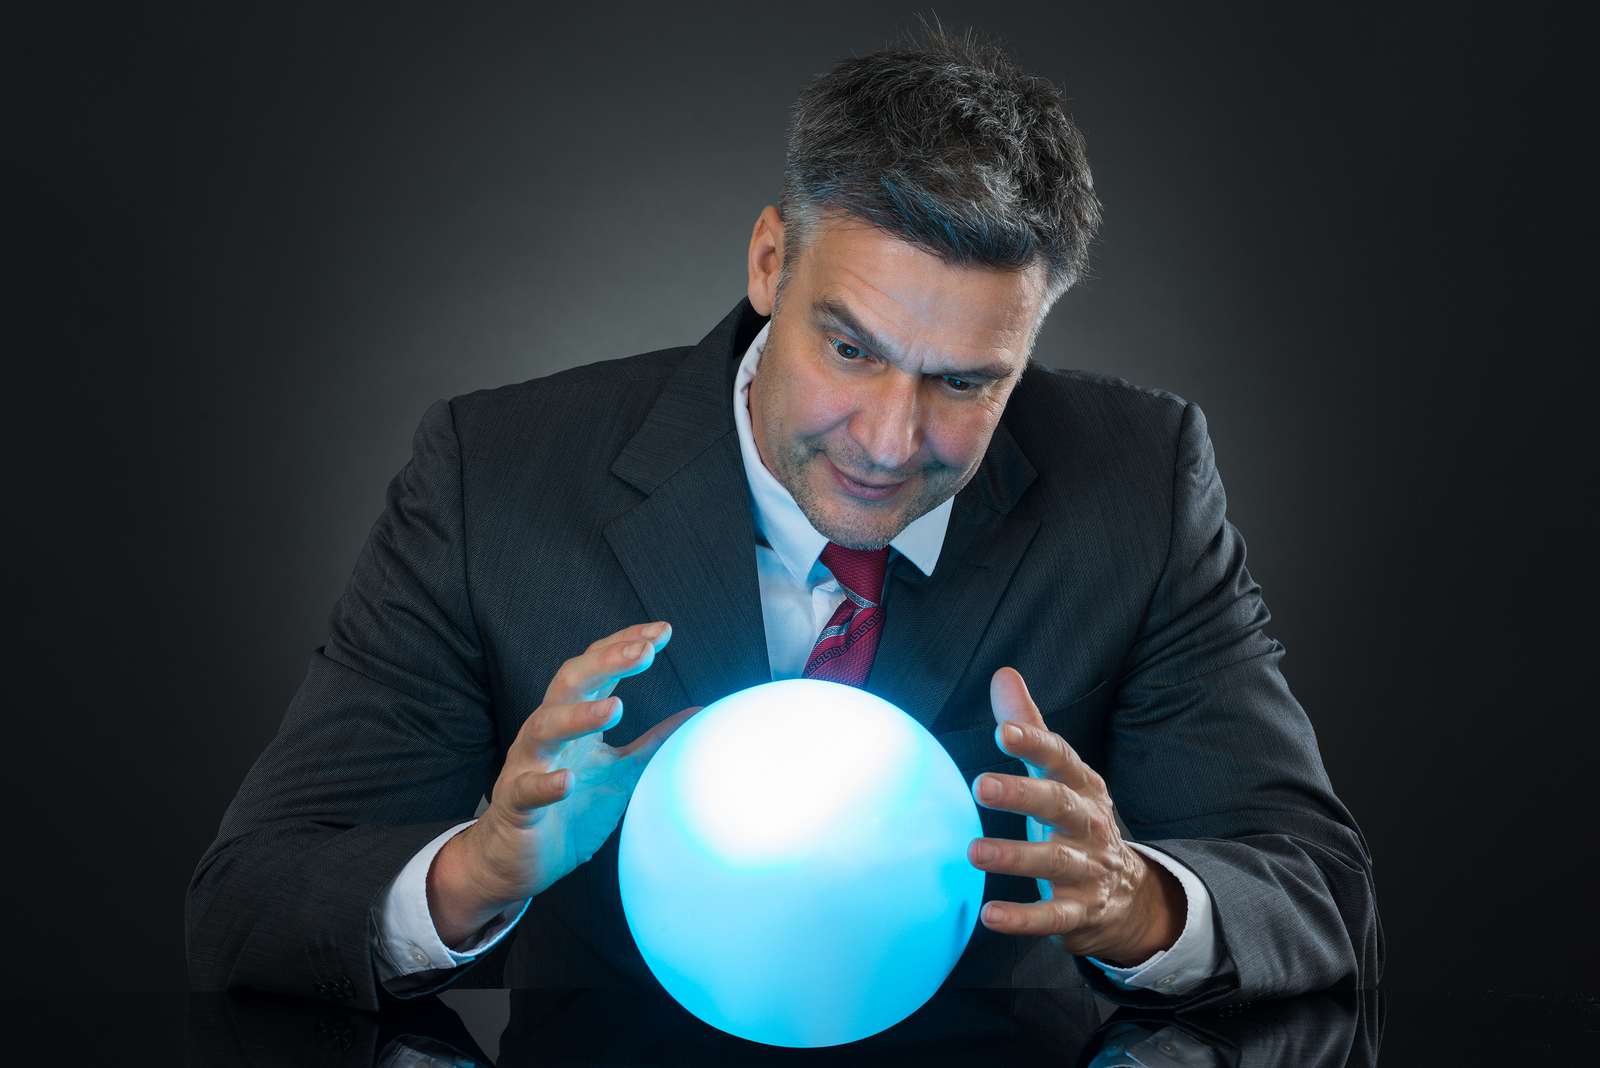 Portrait Of Businessman Predicting Future With Crystal Ball On Desk